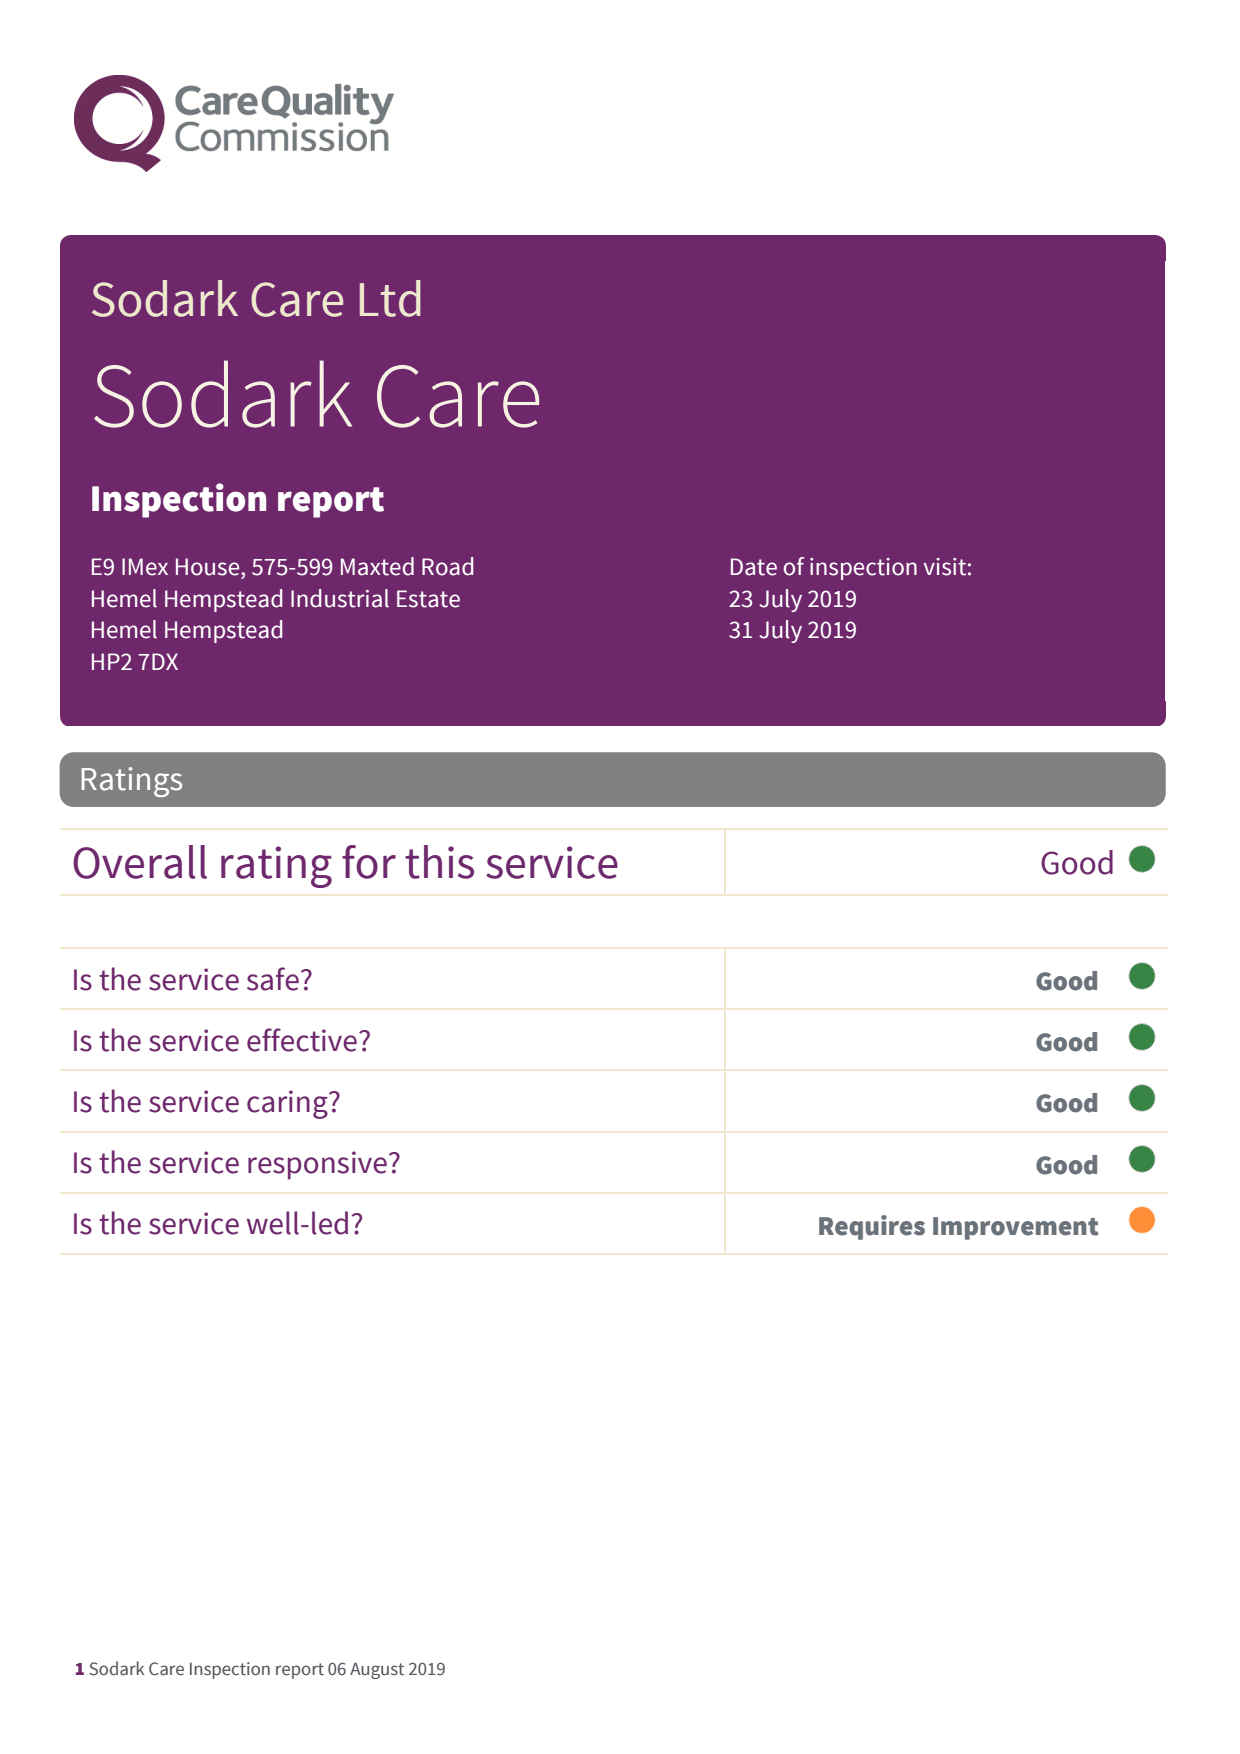 Sodark Care Ltd